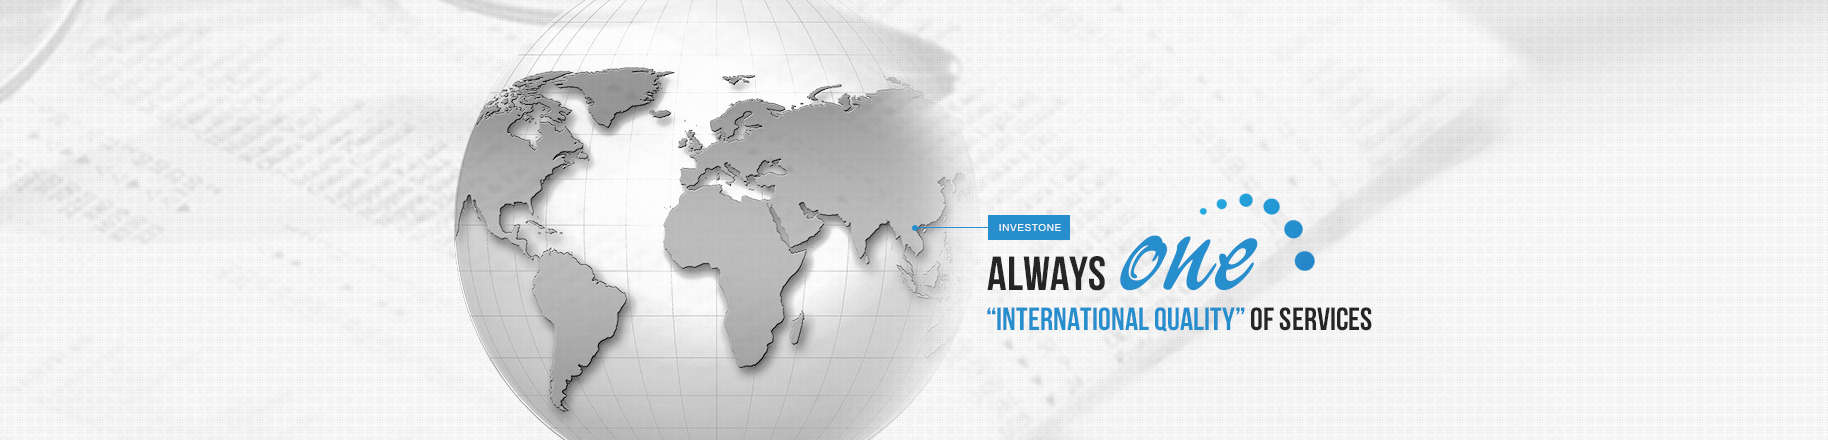 InvestOne provides an international quality of Services